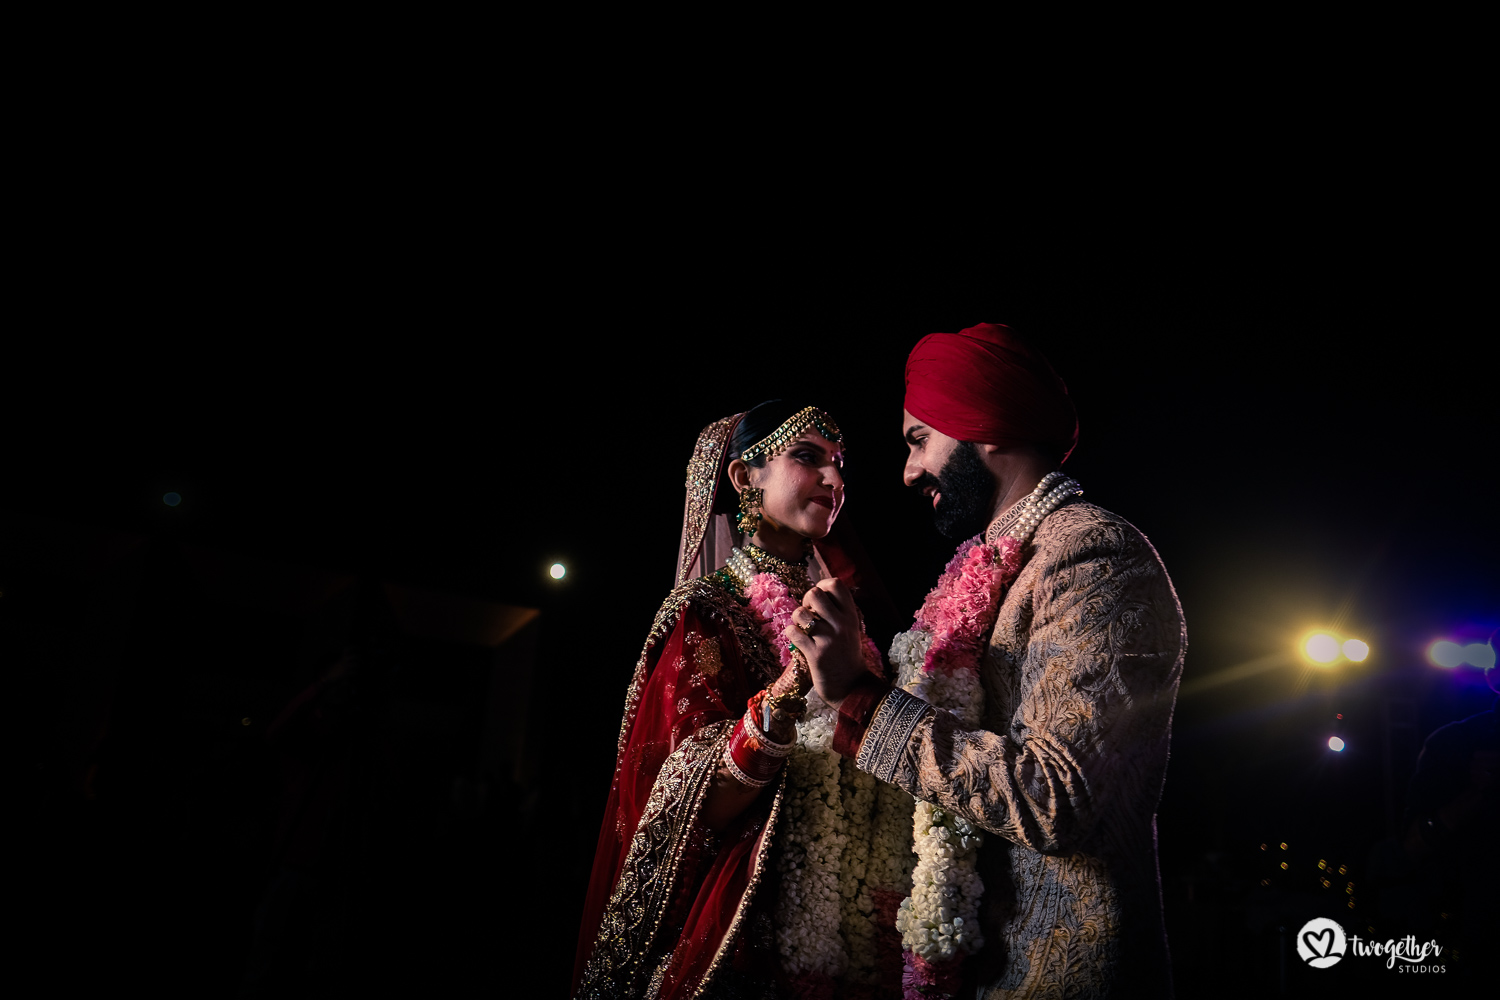 Indian couple dance at a Delhi wedding.